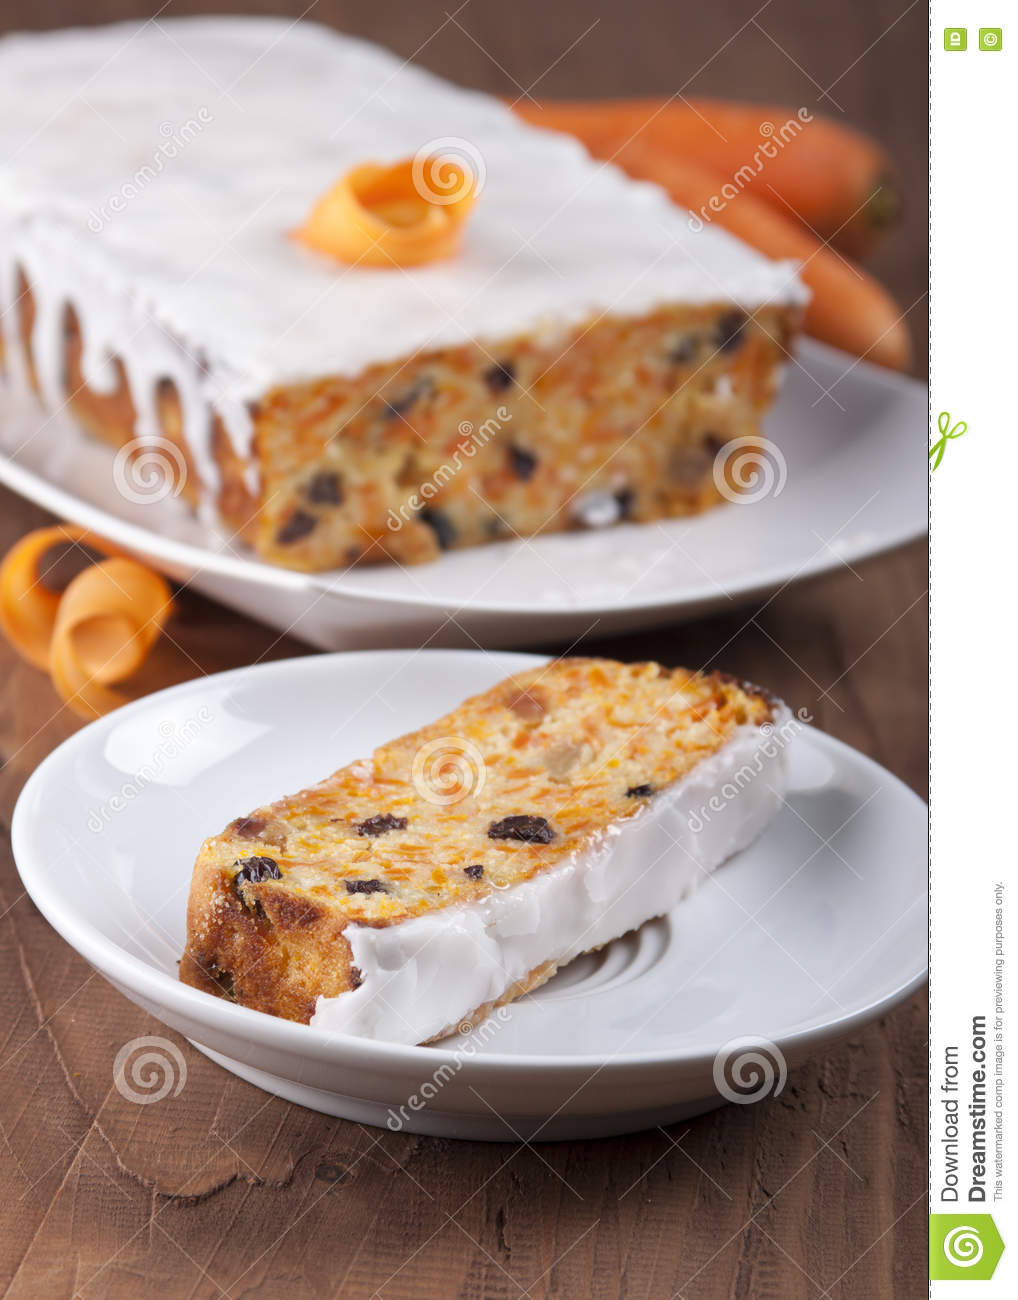 Download Carrot cake . stock image. Image of gourmet, frosting - 78697031